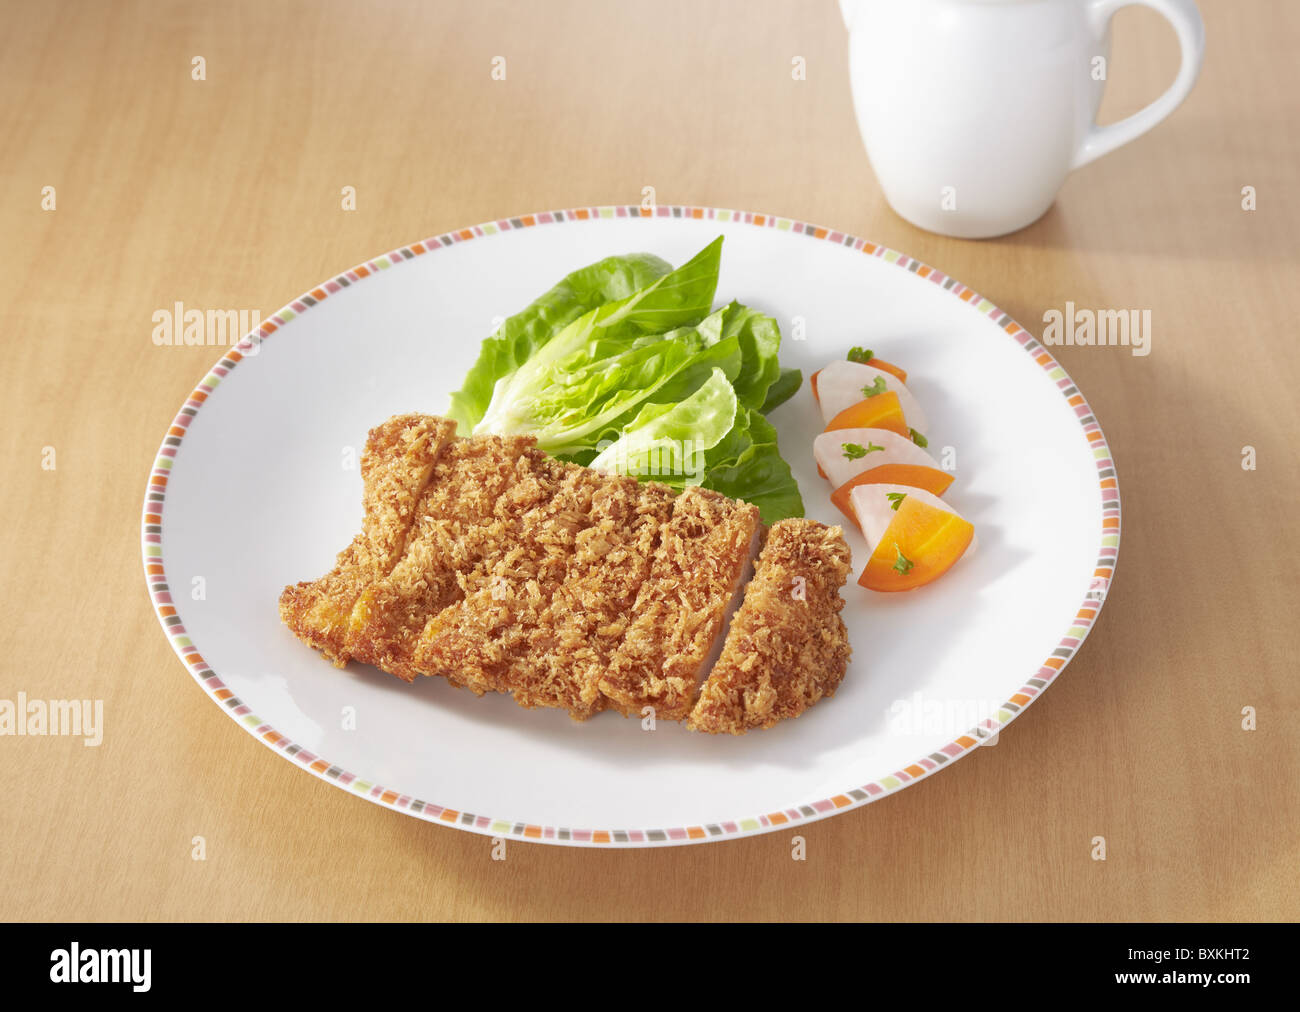 Deep fried chicken cutlet - Stock Image